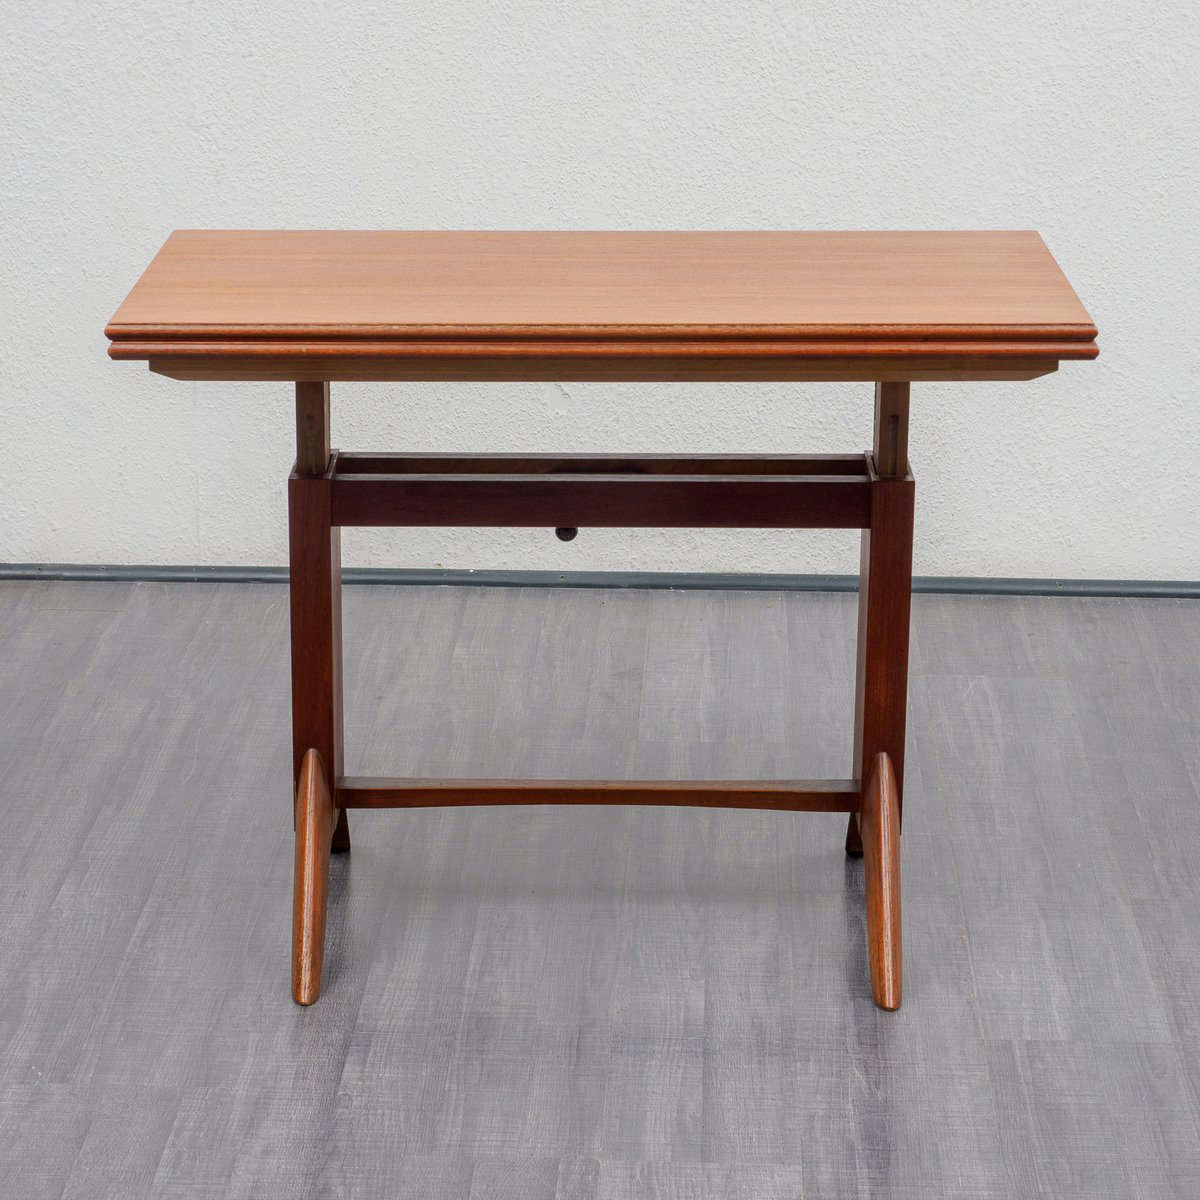 Teak Coffee Or Dining Table From Wilhelm Renz 1950s For Sale At Pamono